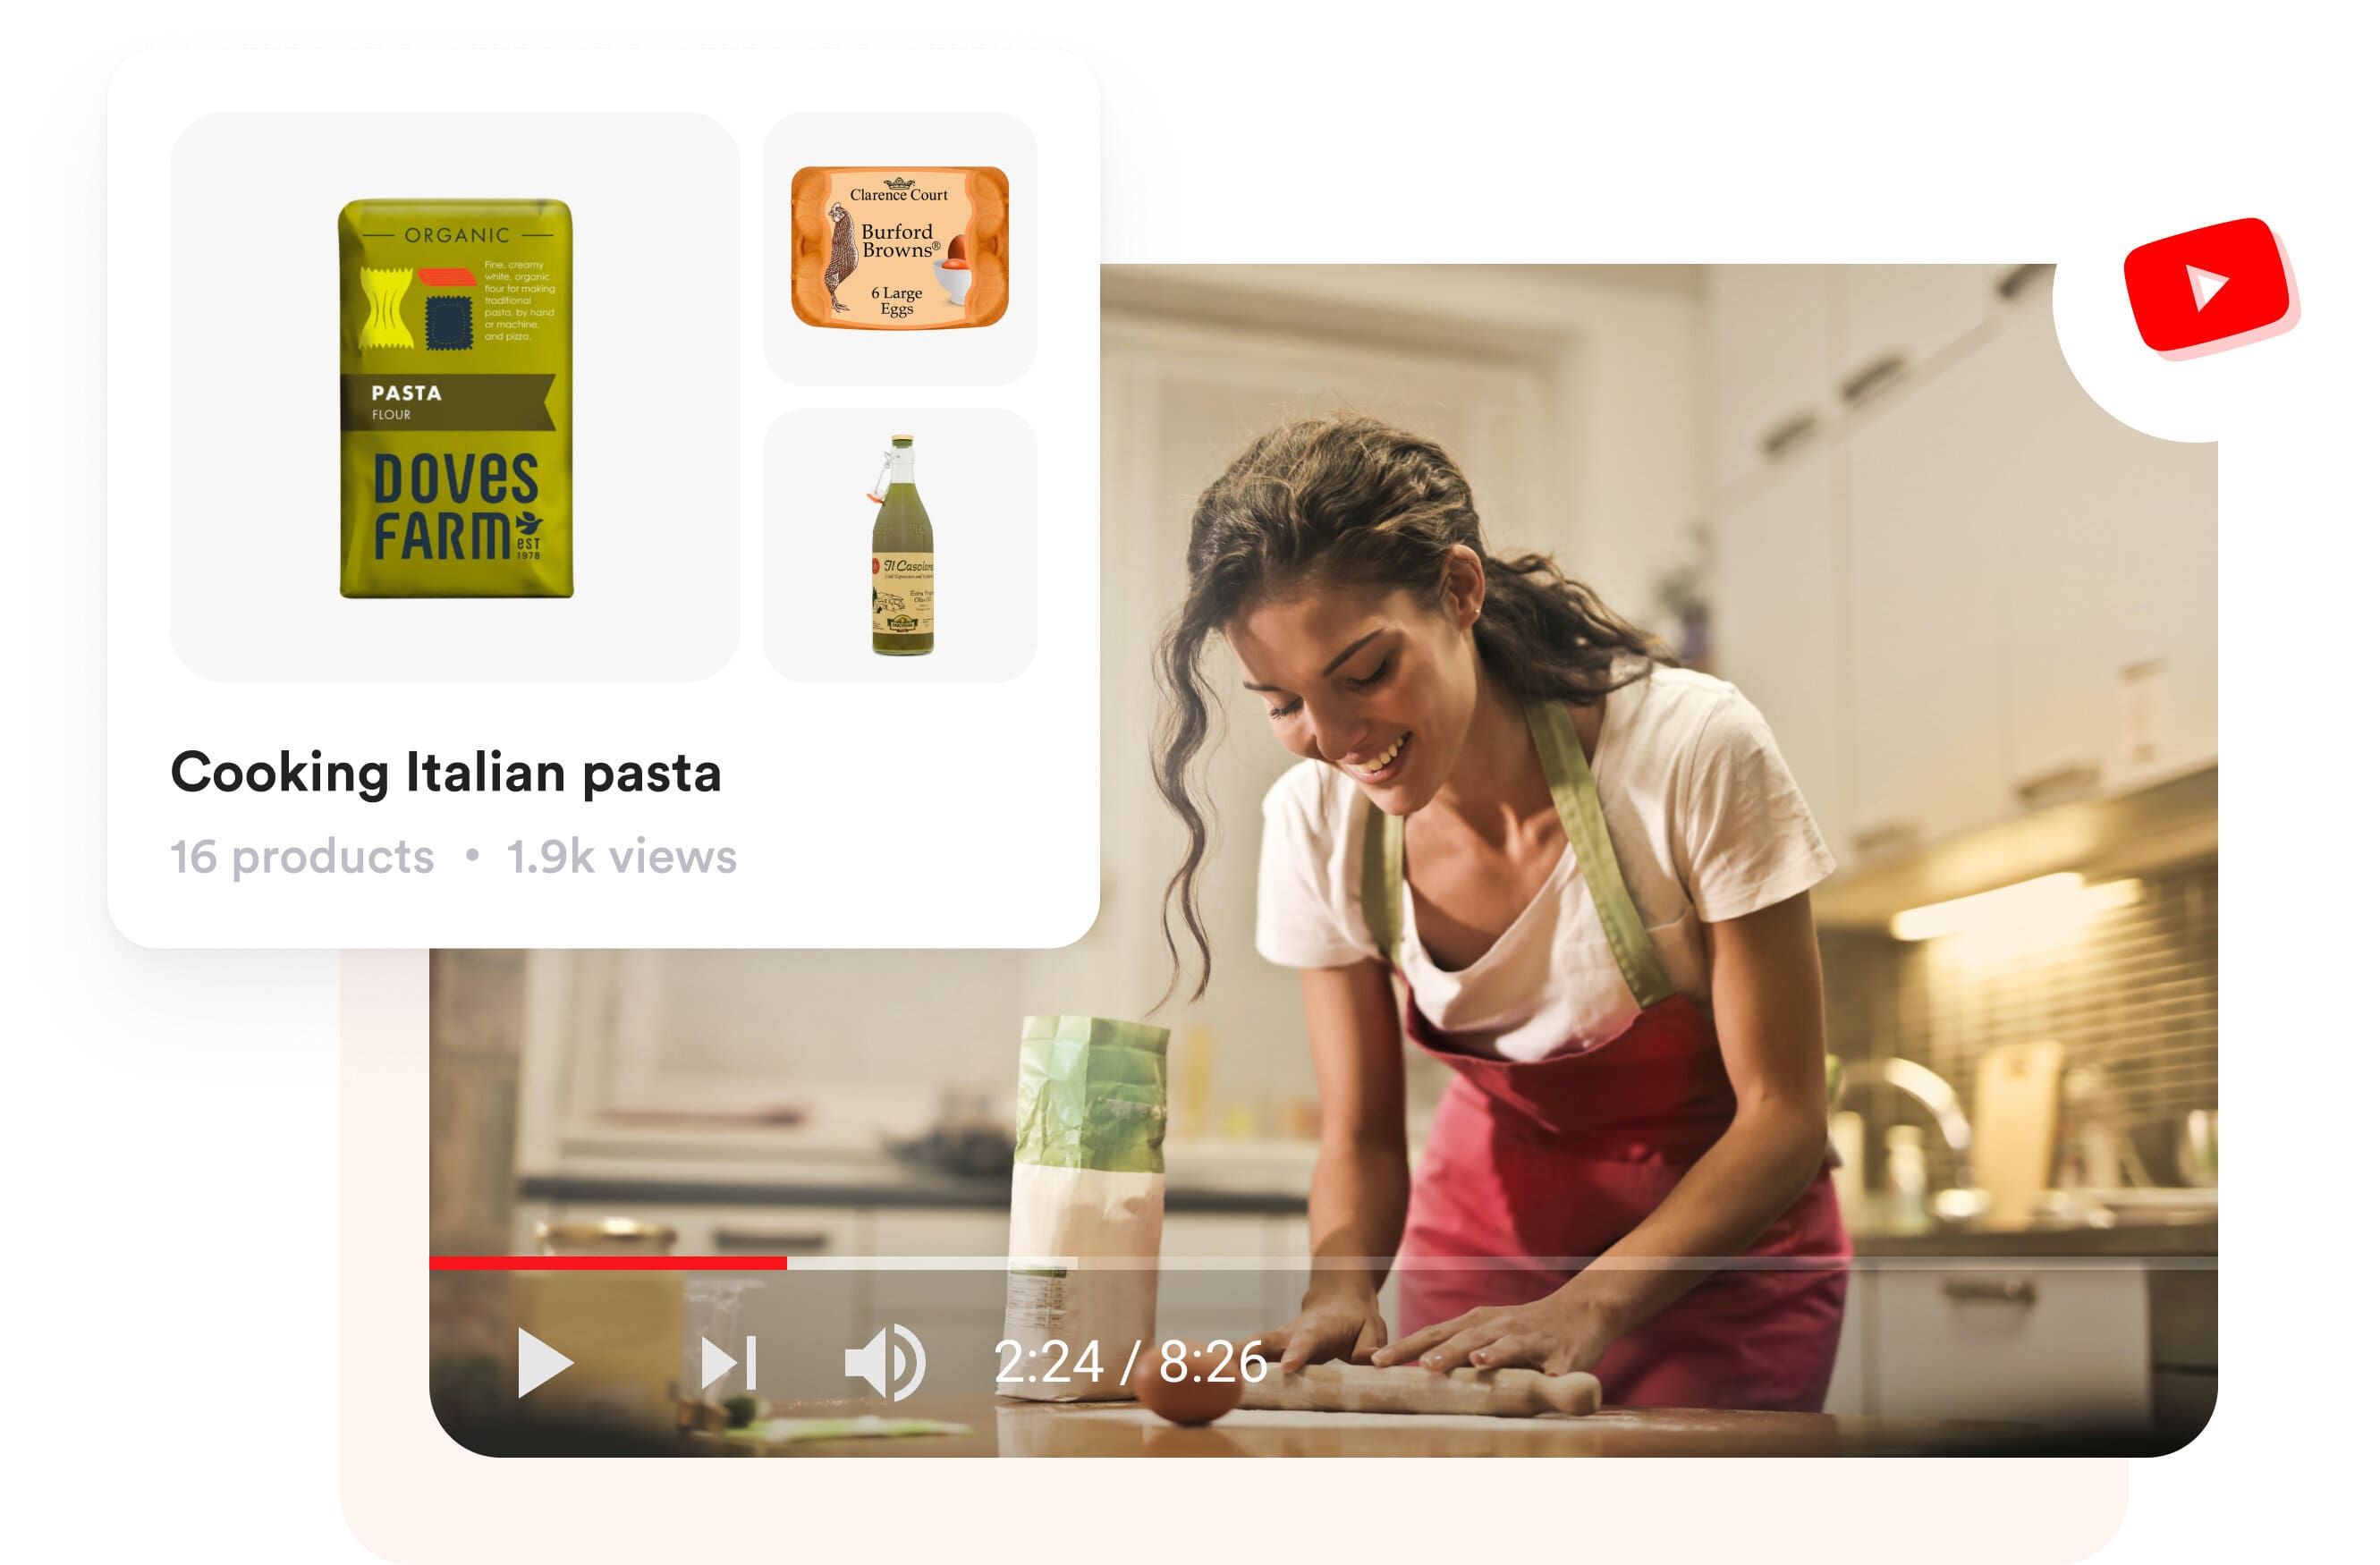 A video of a lady cooking in the youtube channel and shopper.com product recommendation is shown on the side of the image